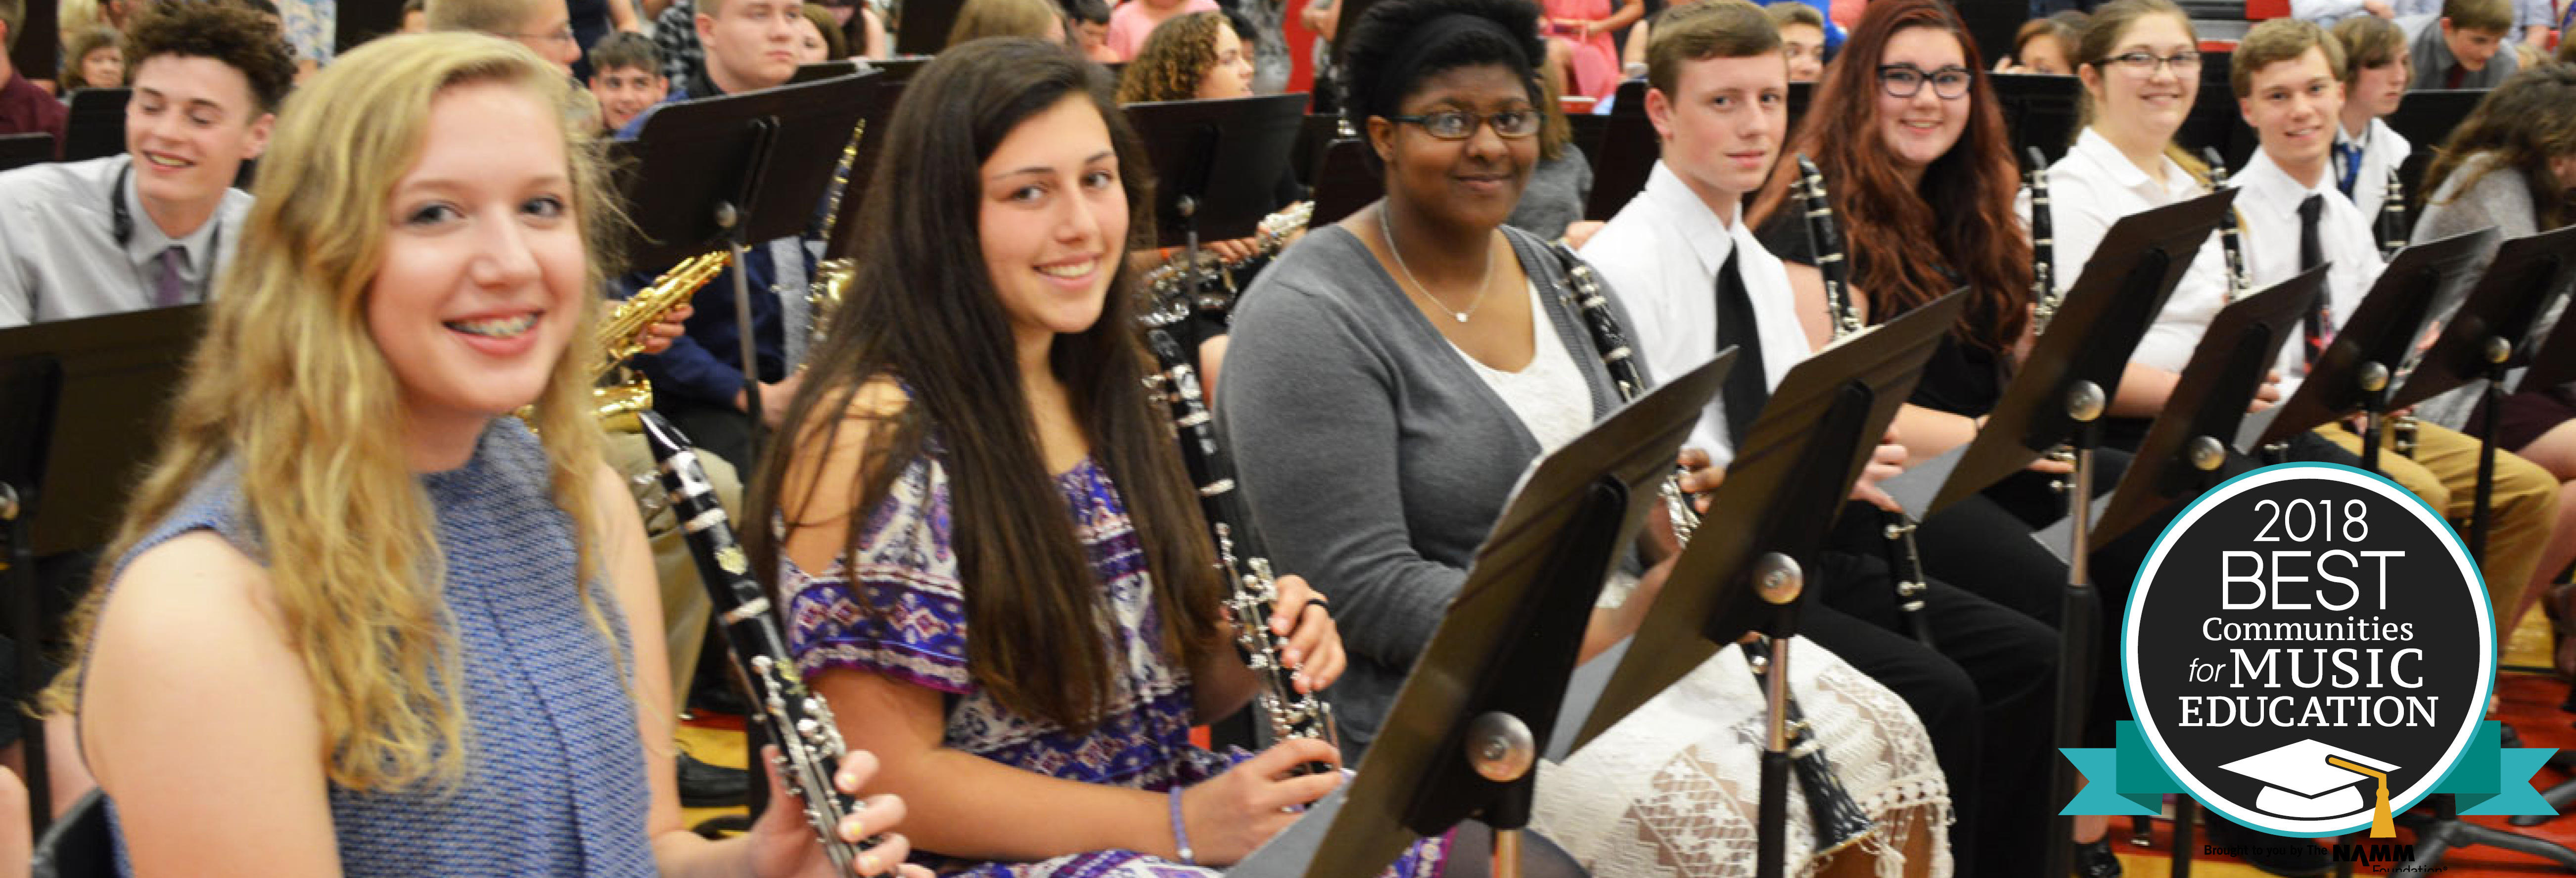 Named One of the Nation's Best Communities for Music Education!